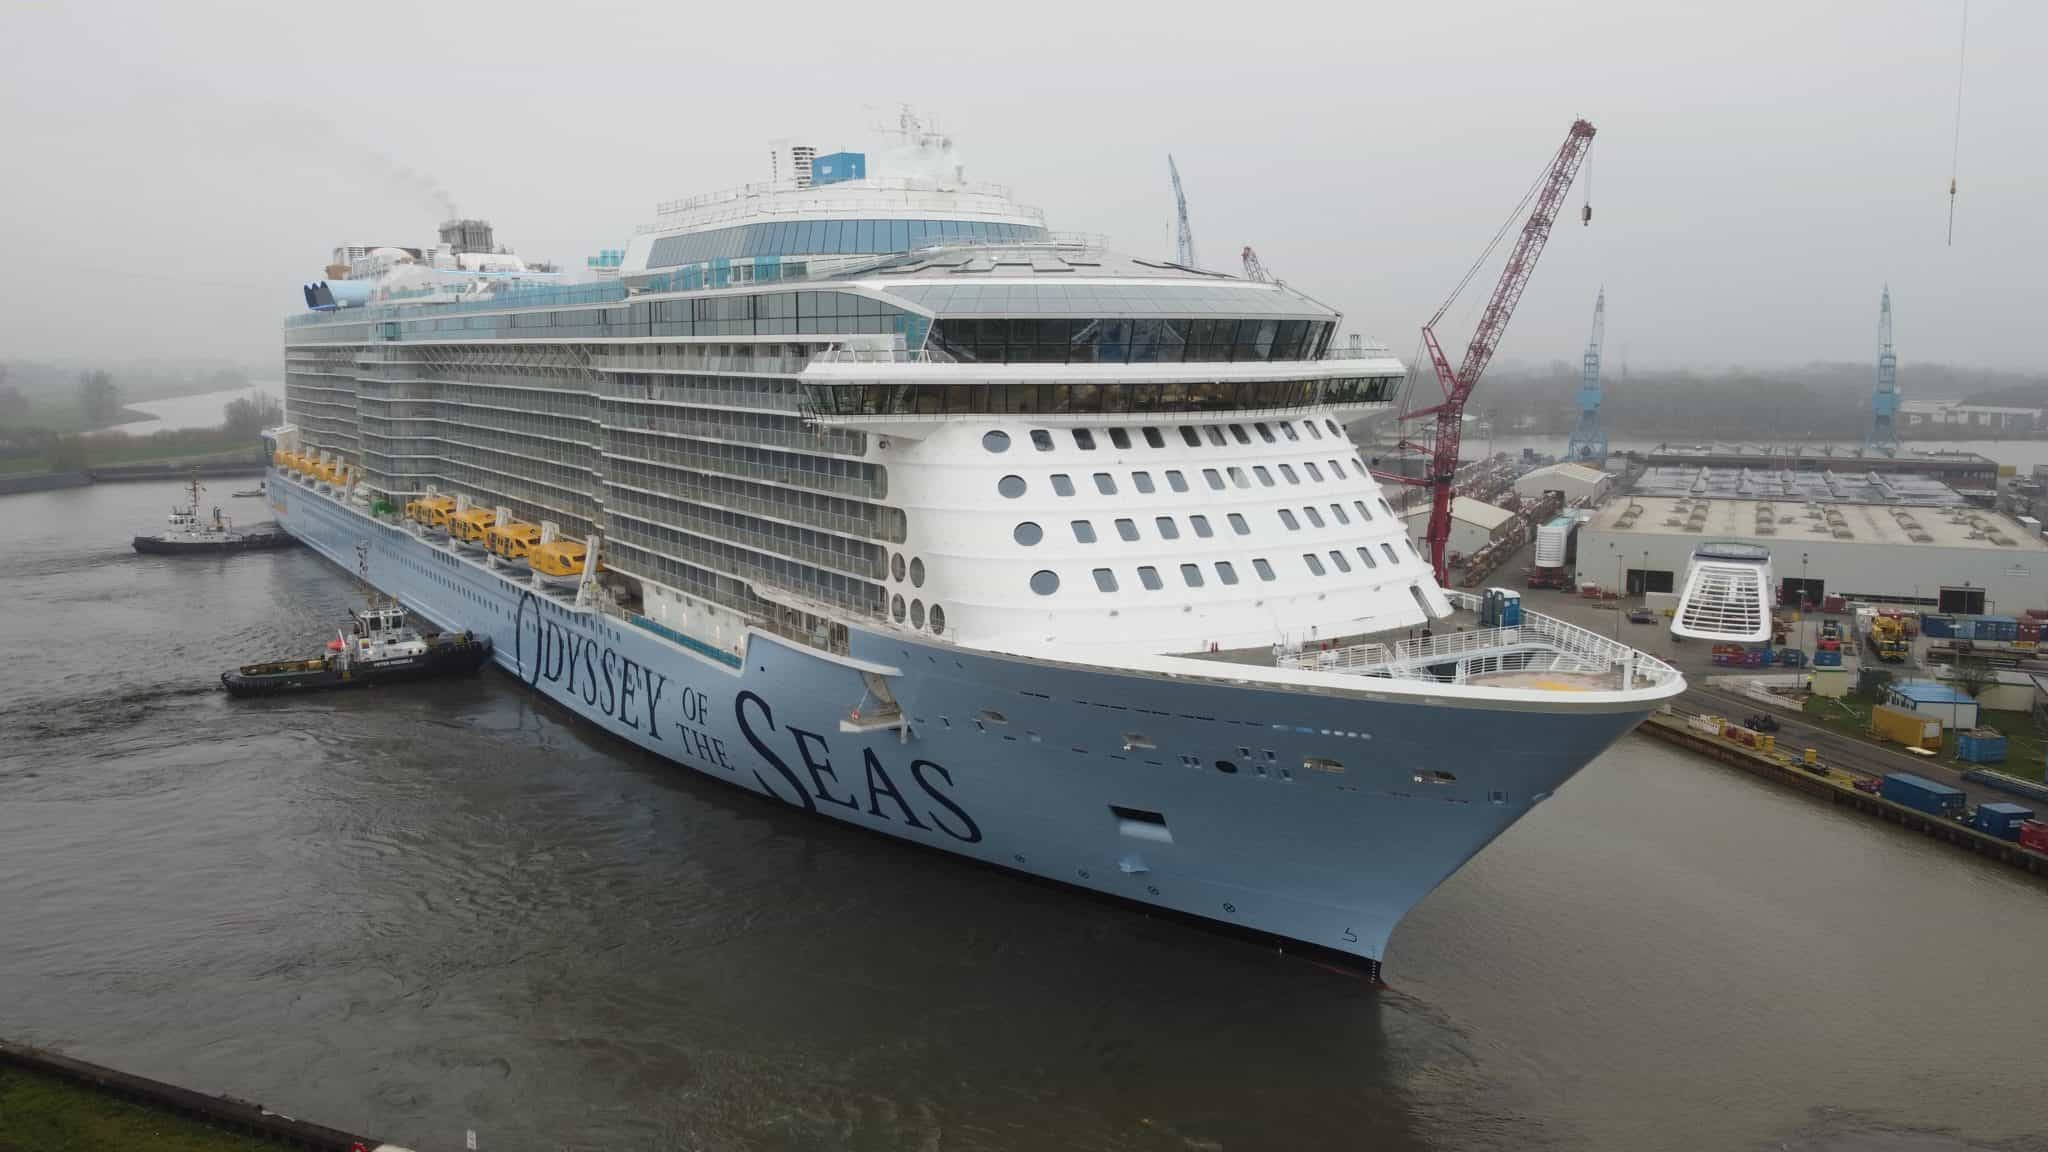 odyssey of the seas floated out